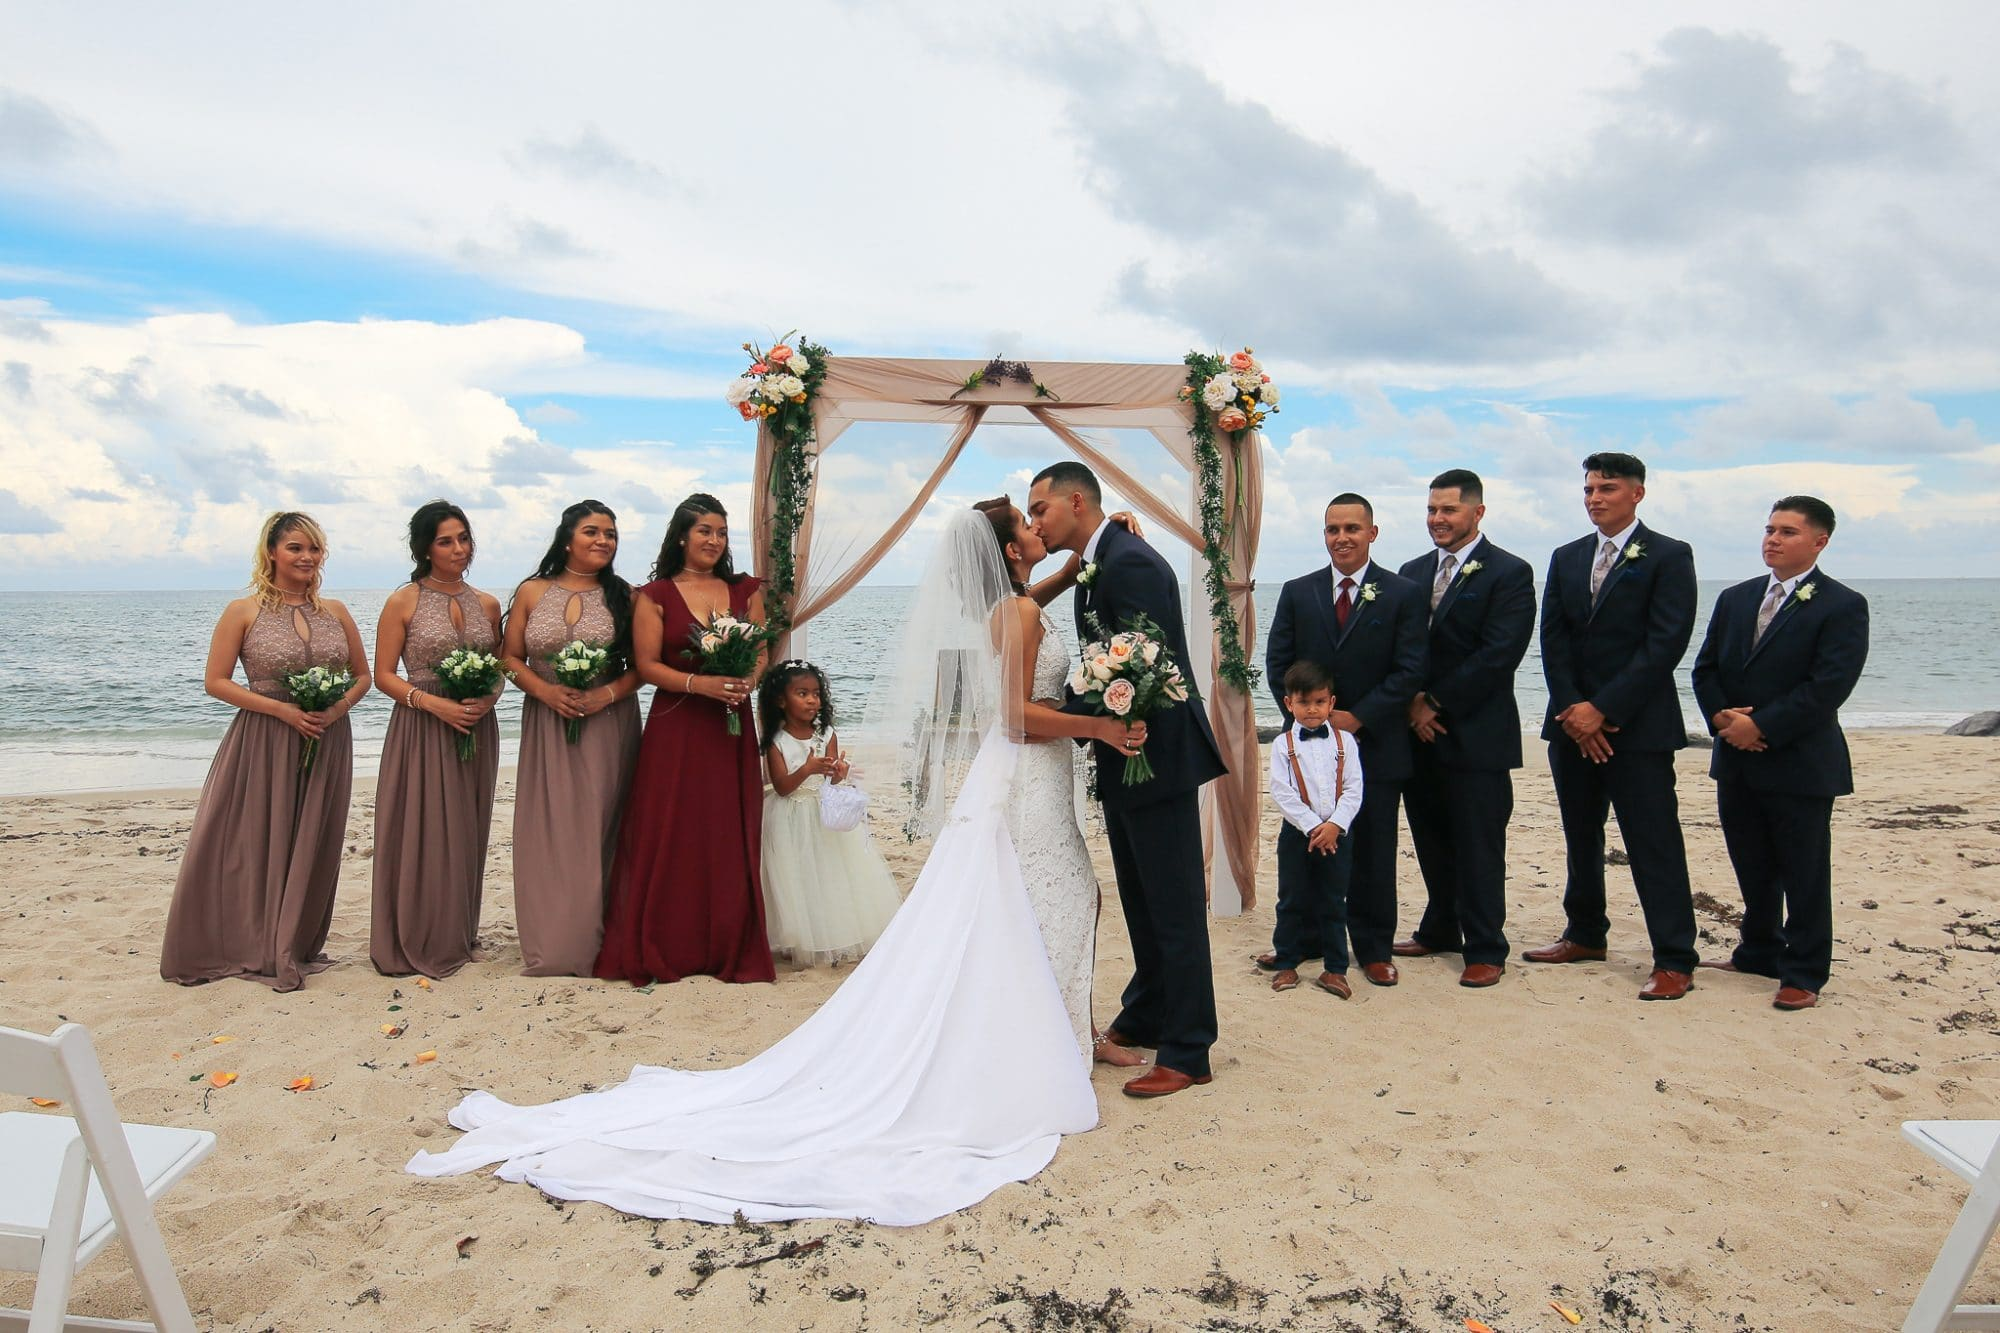 Live Love Laugh Events - bride and groom's first kiss at beach ceremony